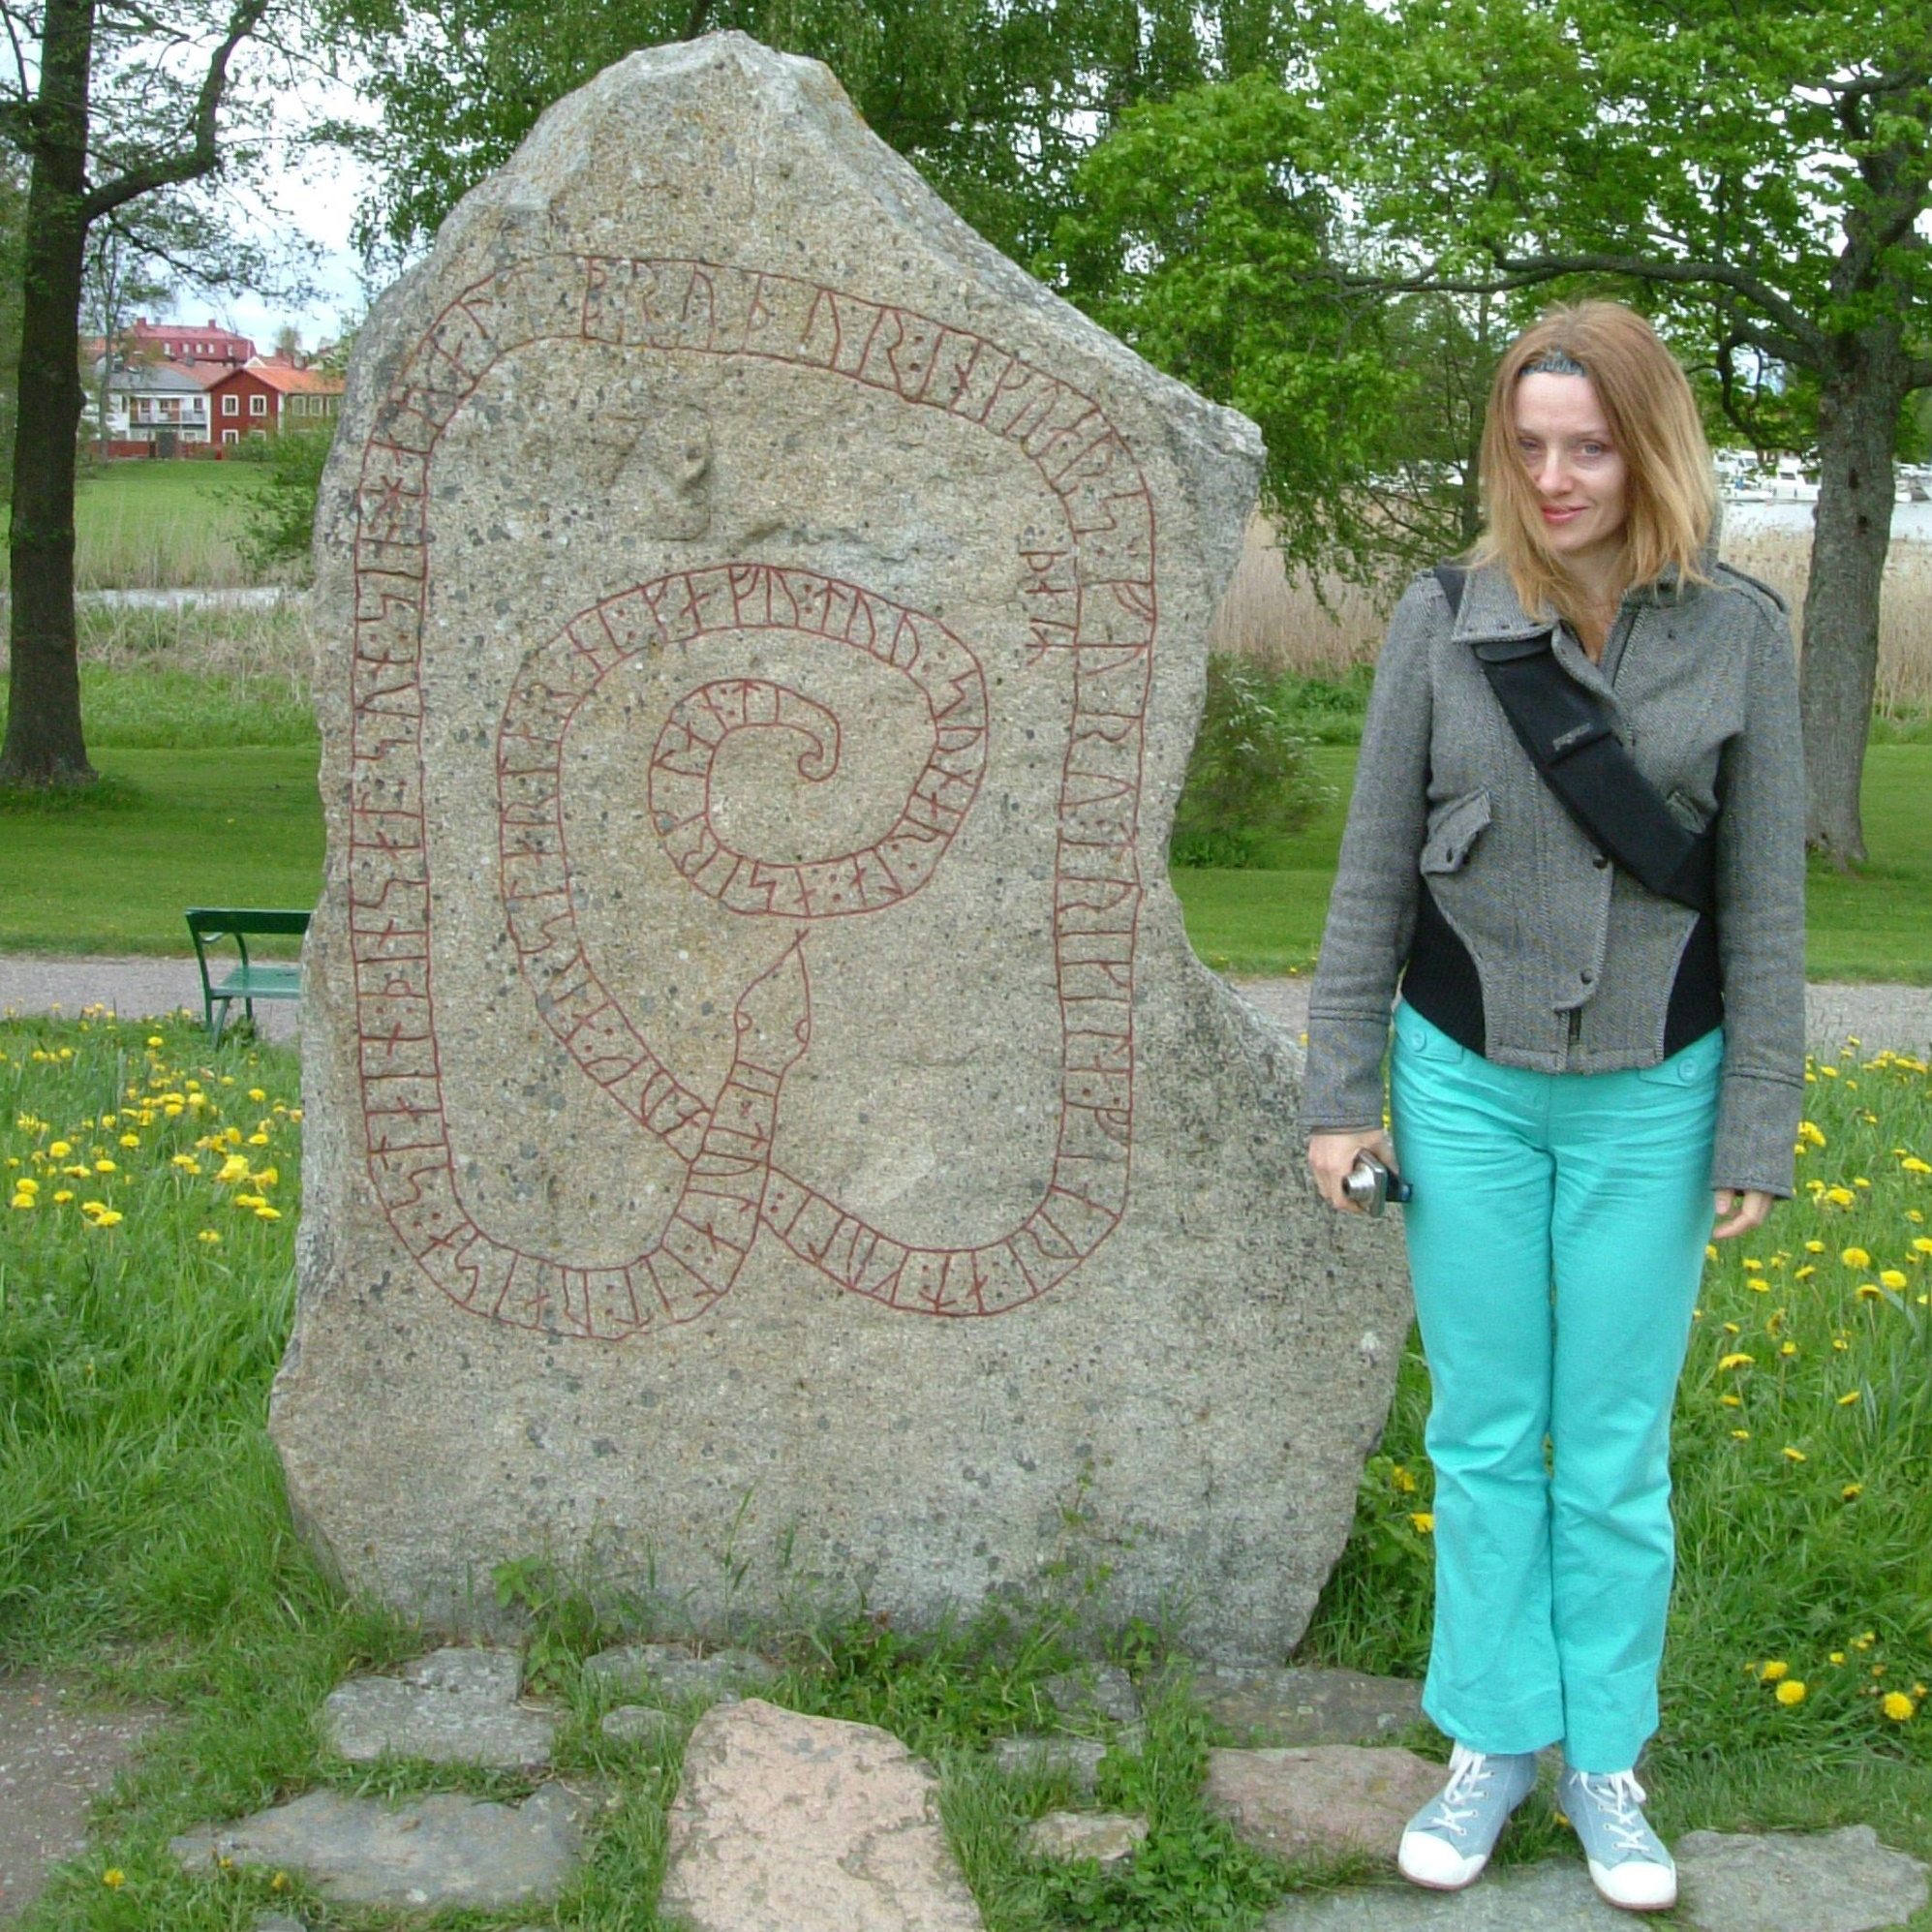 A stone with a snake inscribed by runes at the Gripsholm castle